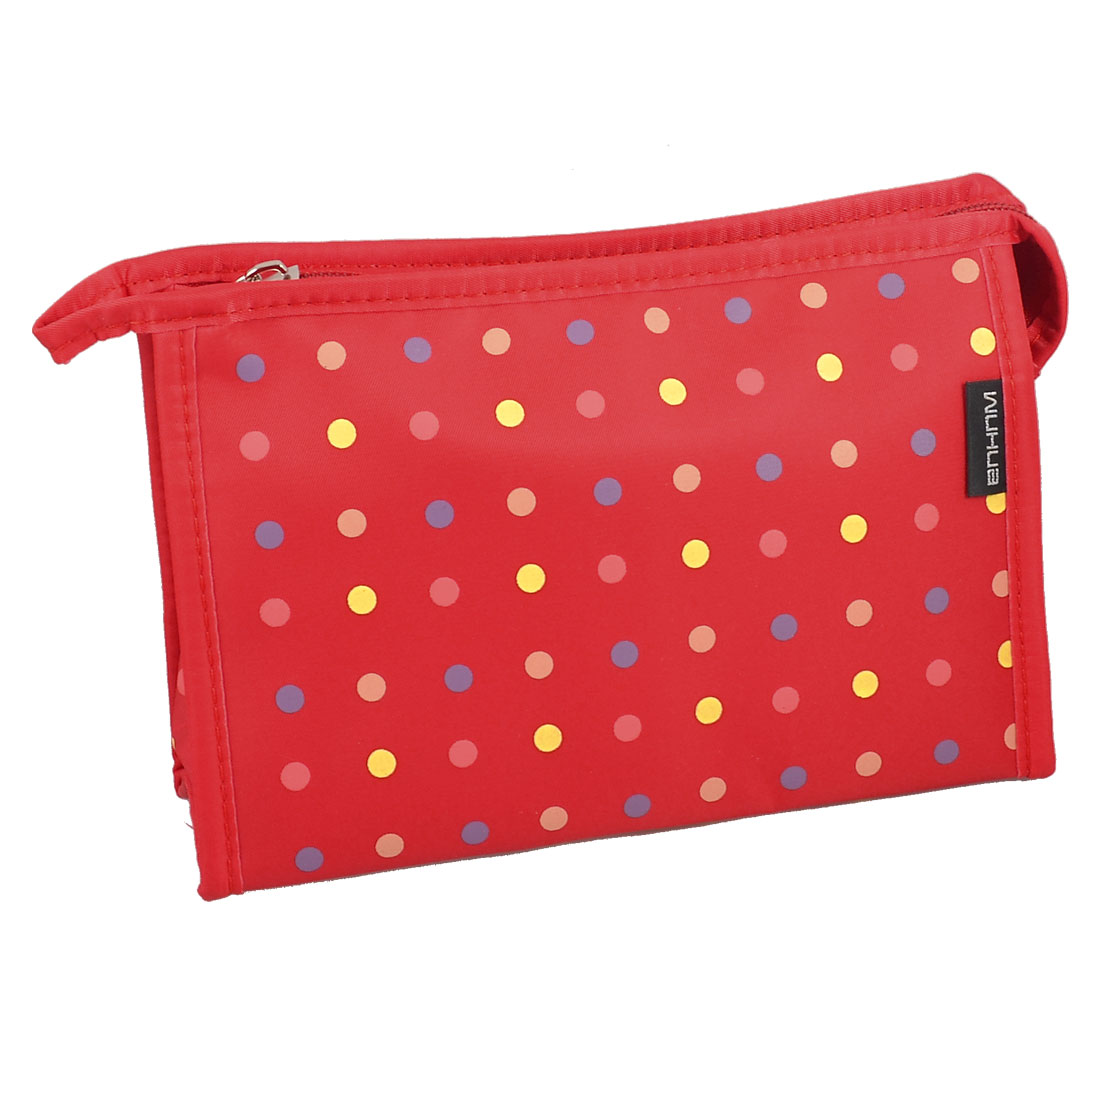 Travel Polka Dot Zipper Make up Cosmetic Bag Pouch Red w Mirror